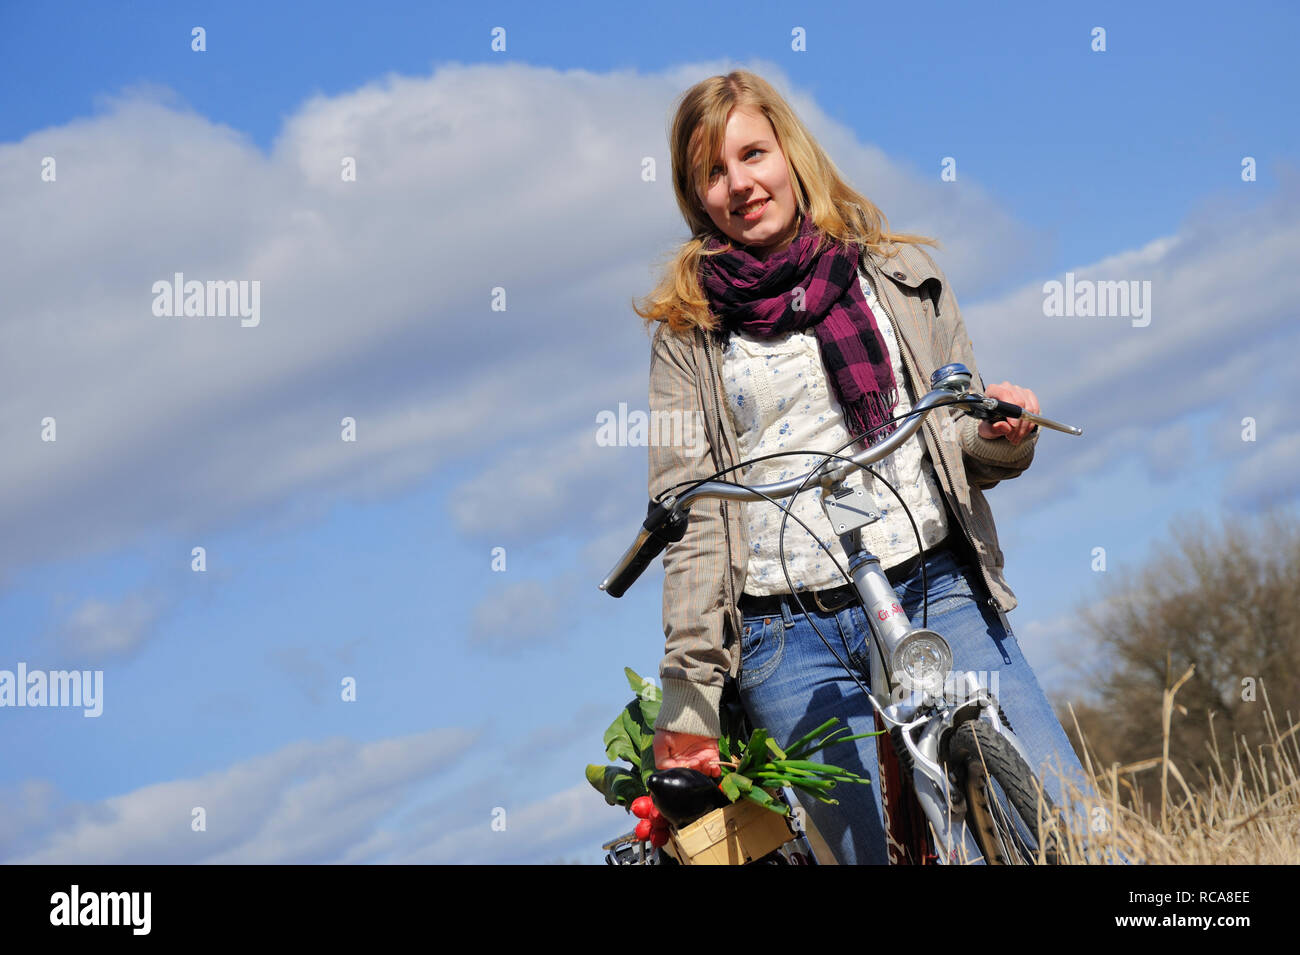 junge Frau mit Fahhrad und Gemüsekorb - junges Gemüse | young women with her bycicle and vegetable basket - Stock Image